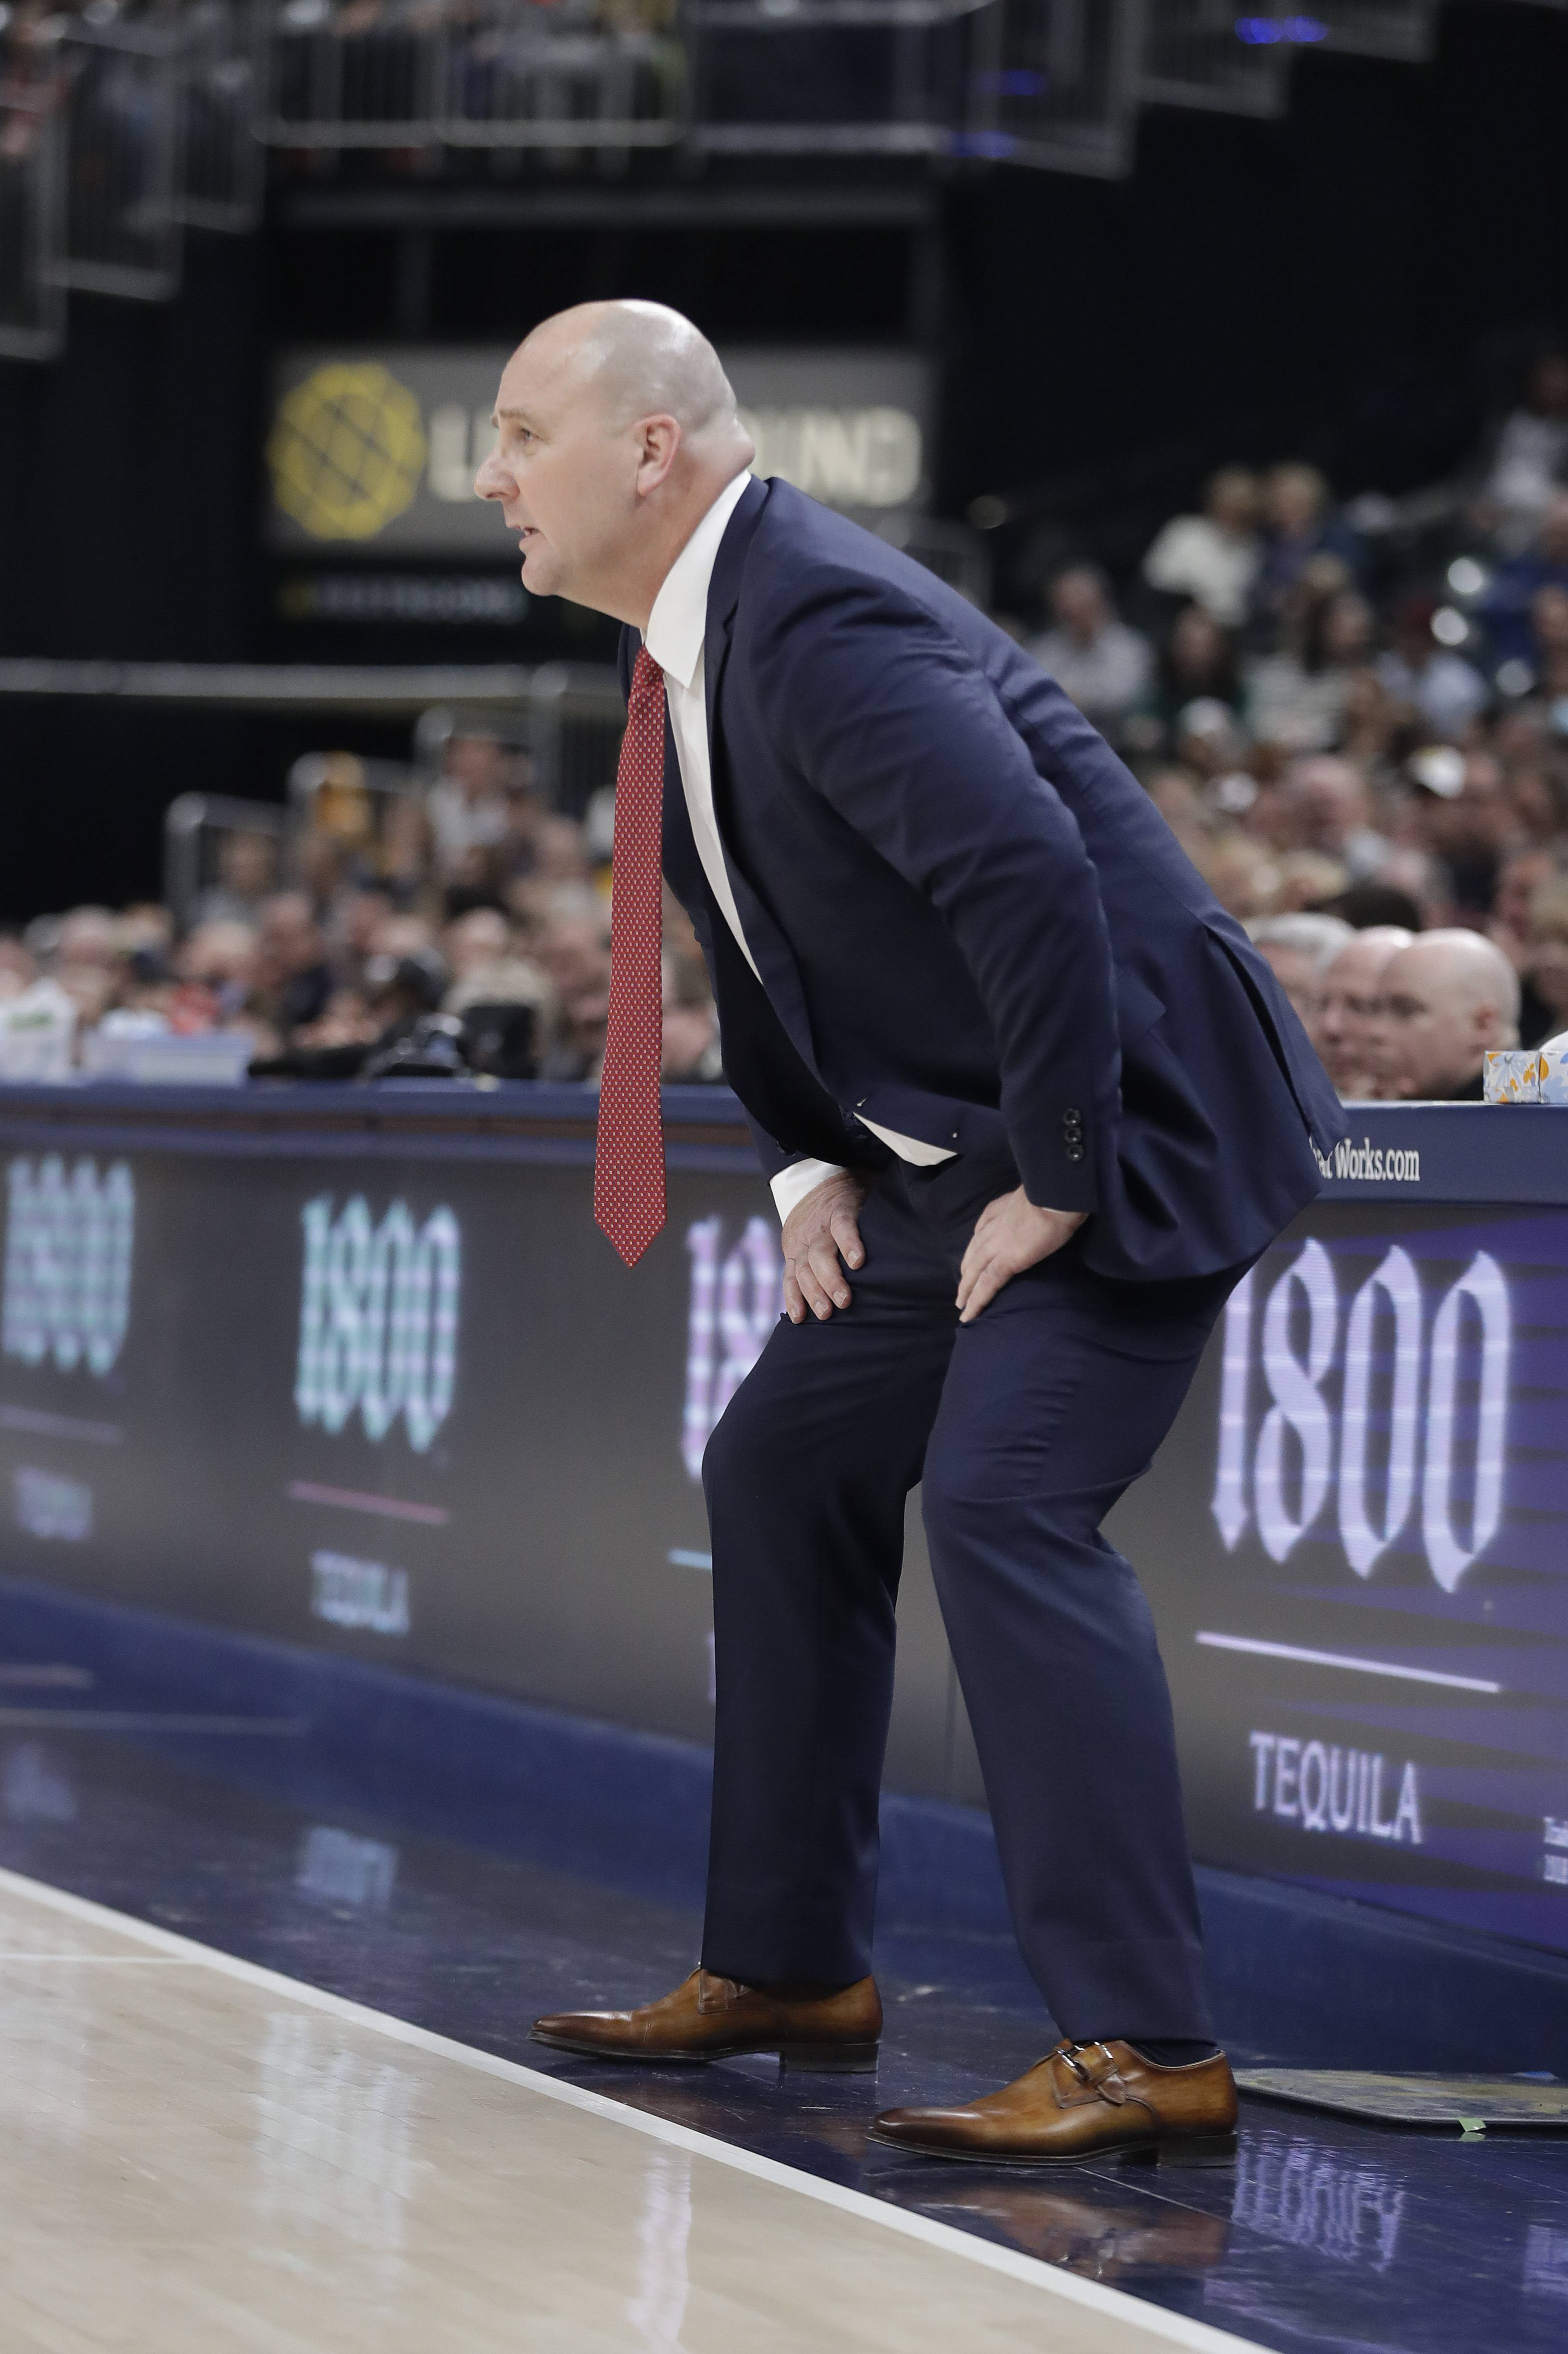 Boylen plans to use Collins' advice during Chicago Bulls coaching transition